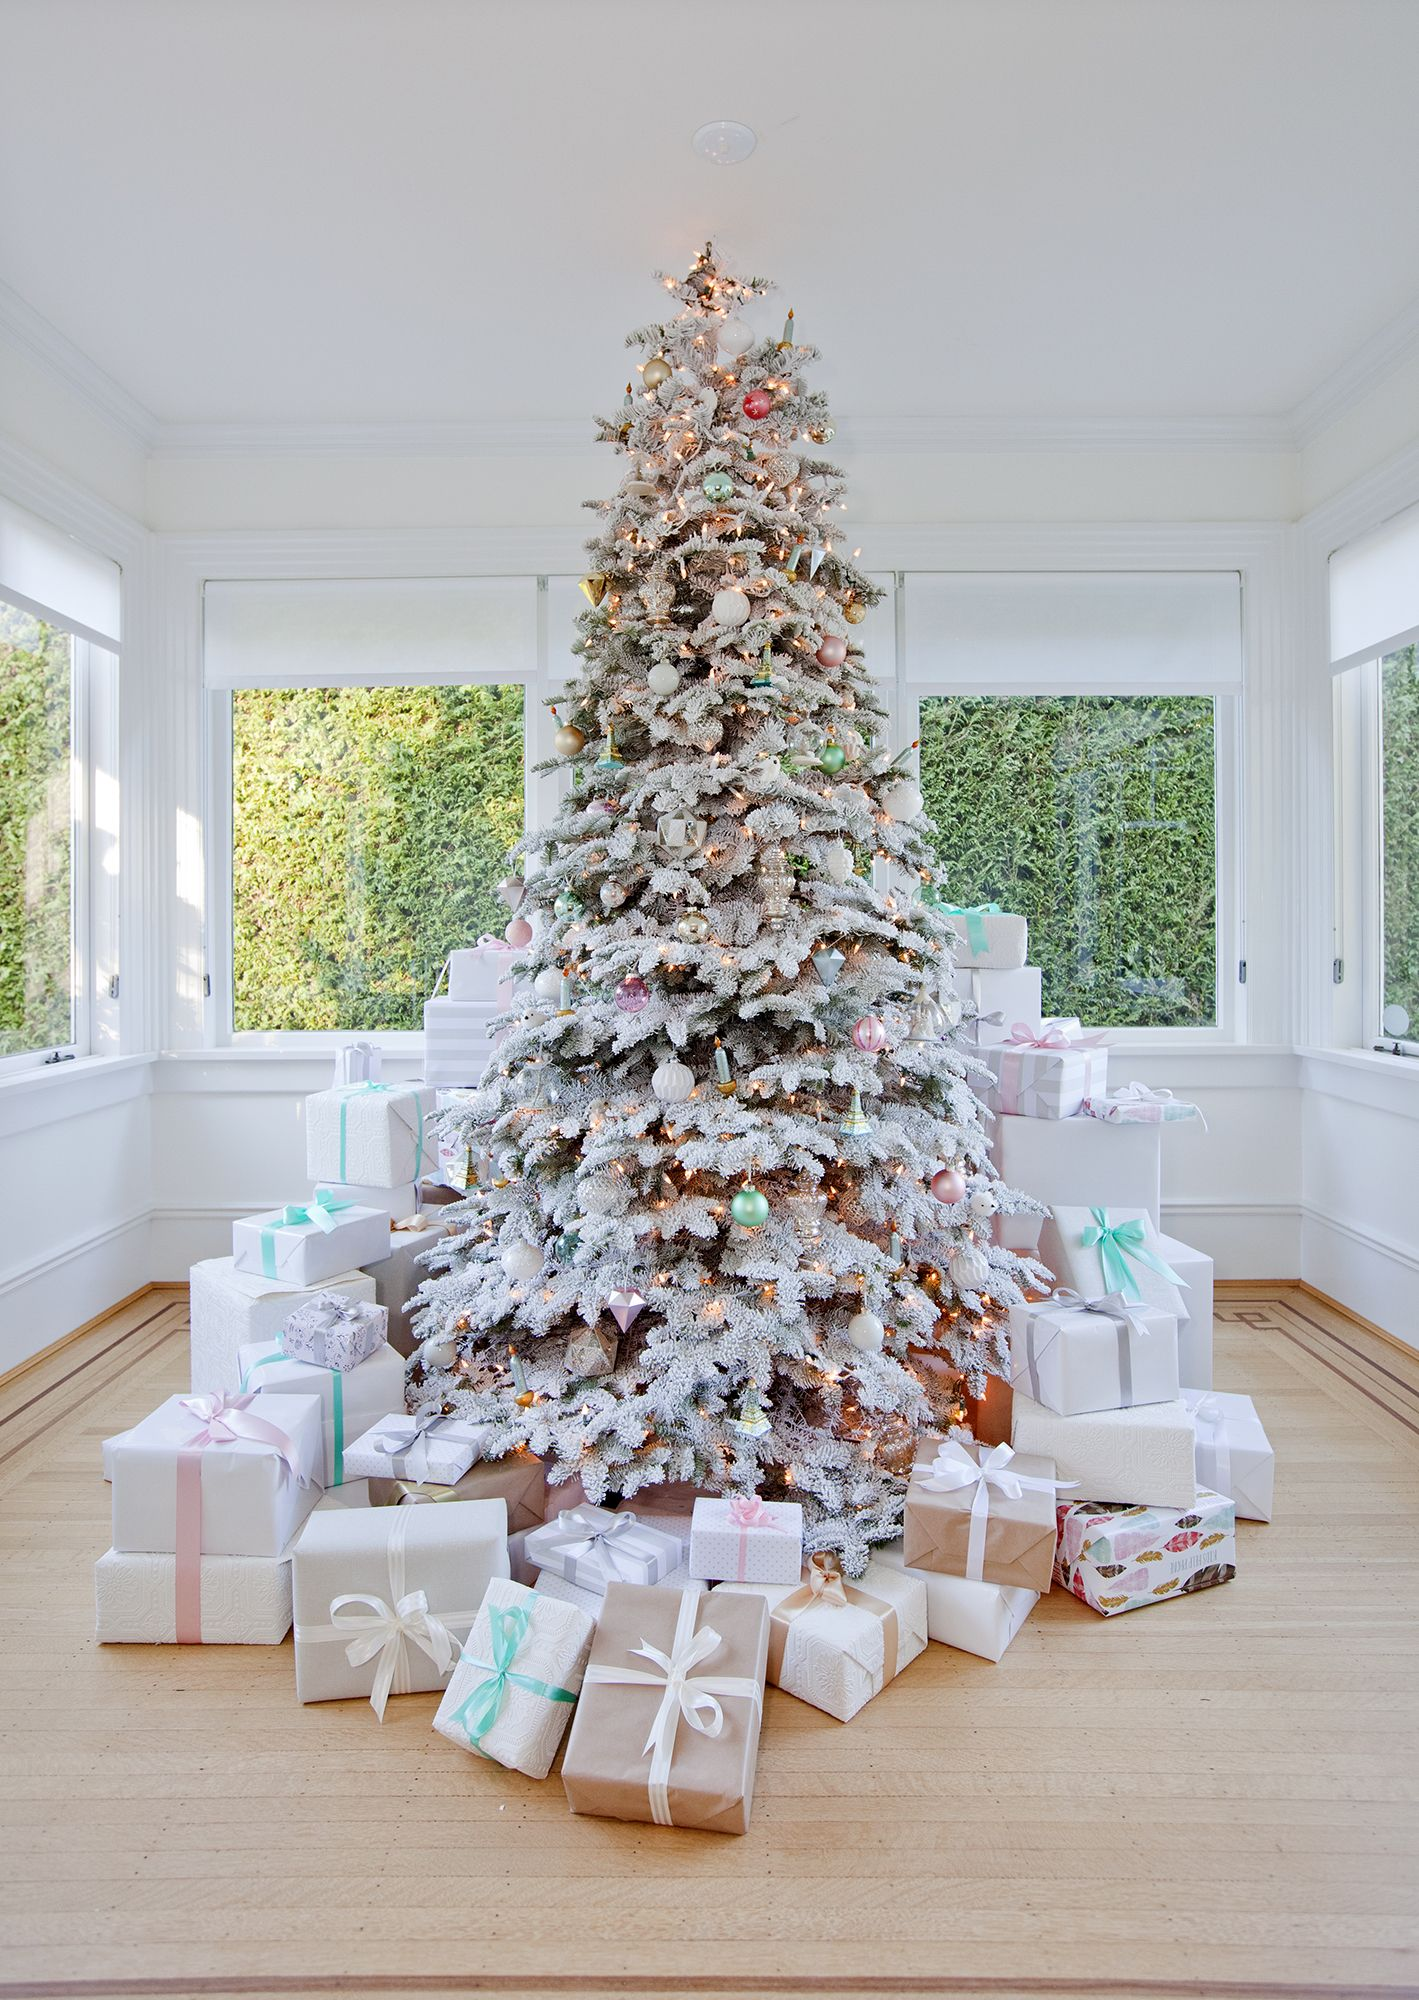 Stunning Christmas Tree Ideas for 2018 - Best Christmas Tree Decorating Styles